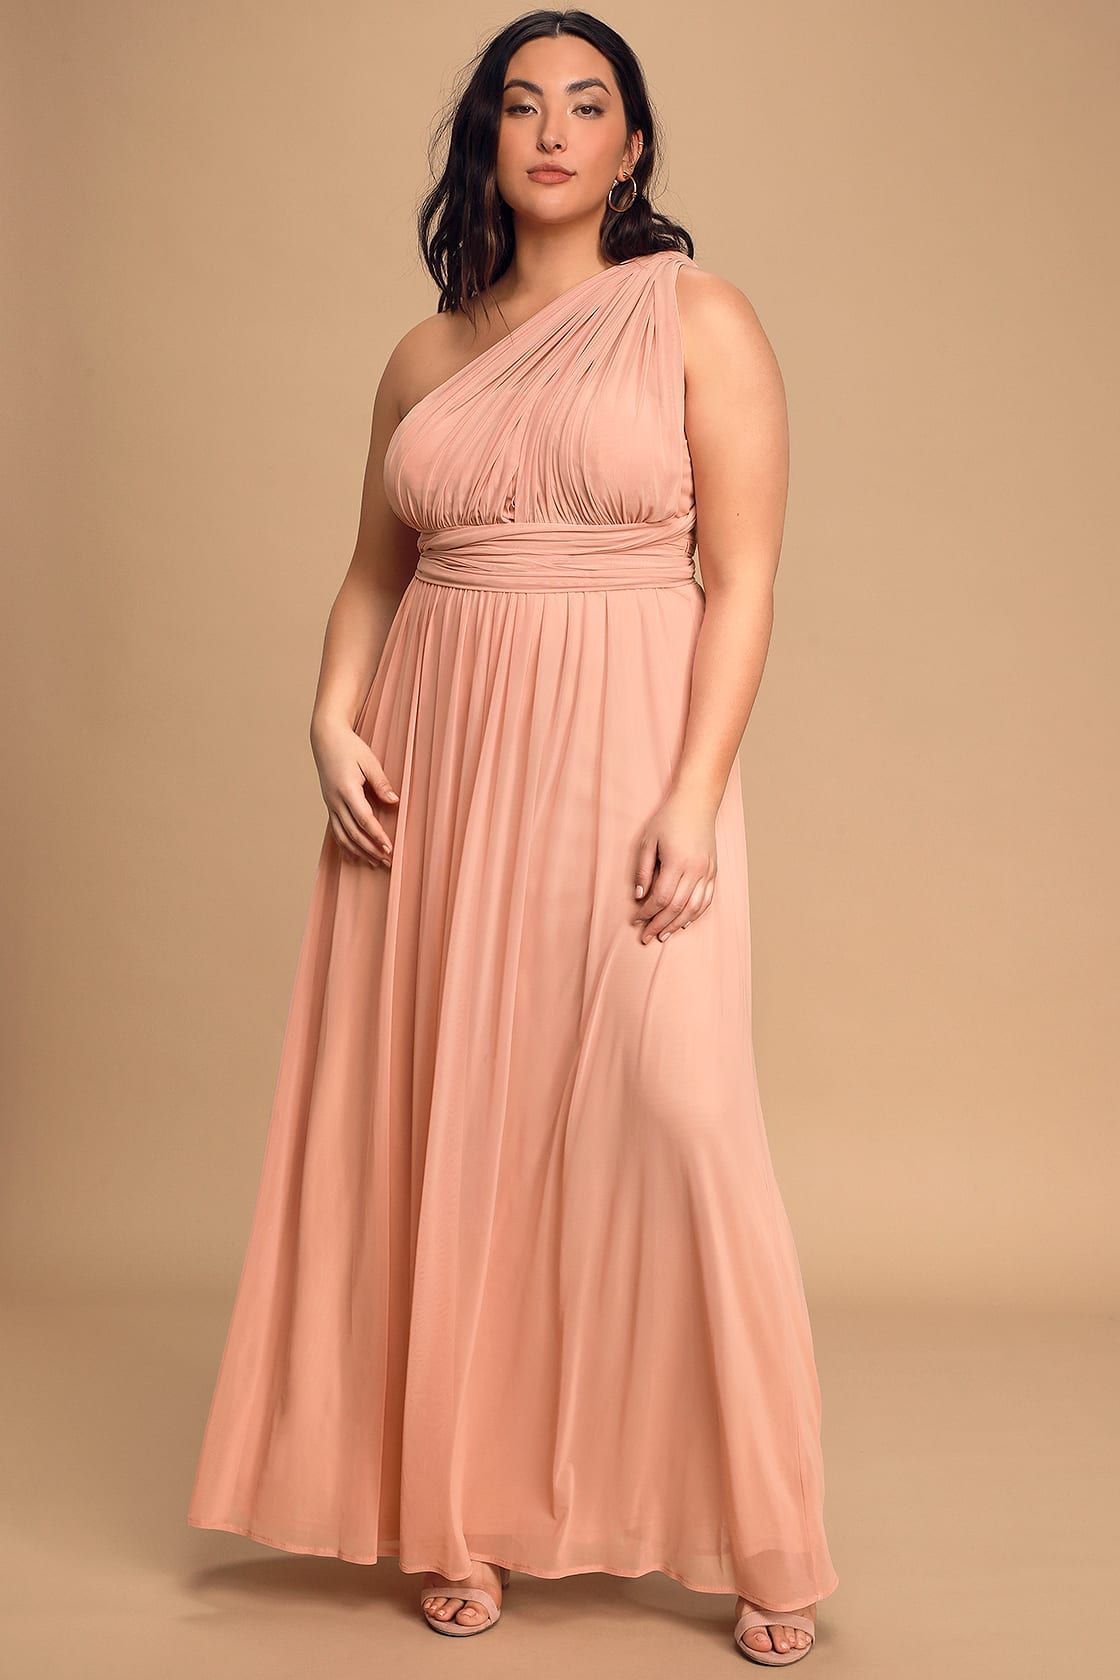 Infinitely Adored Blush Pink Convertible Maxi Dress in